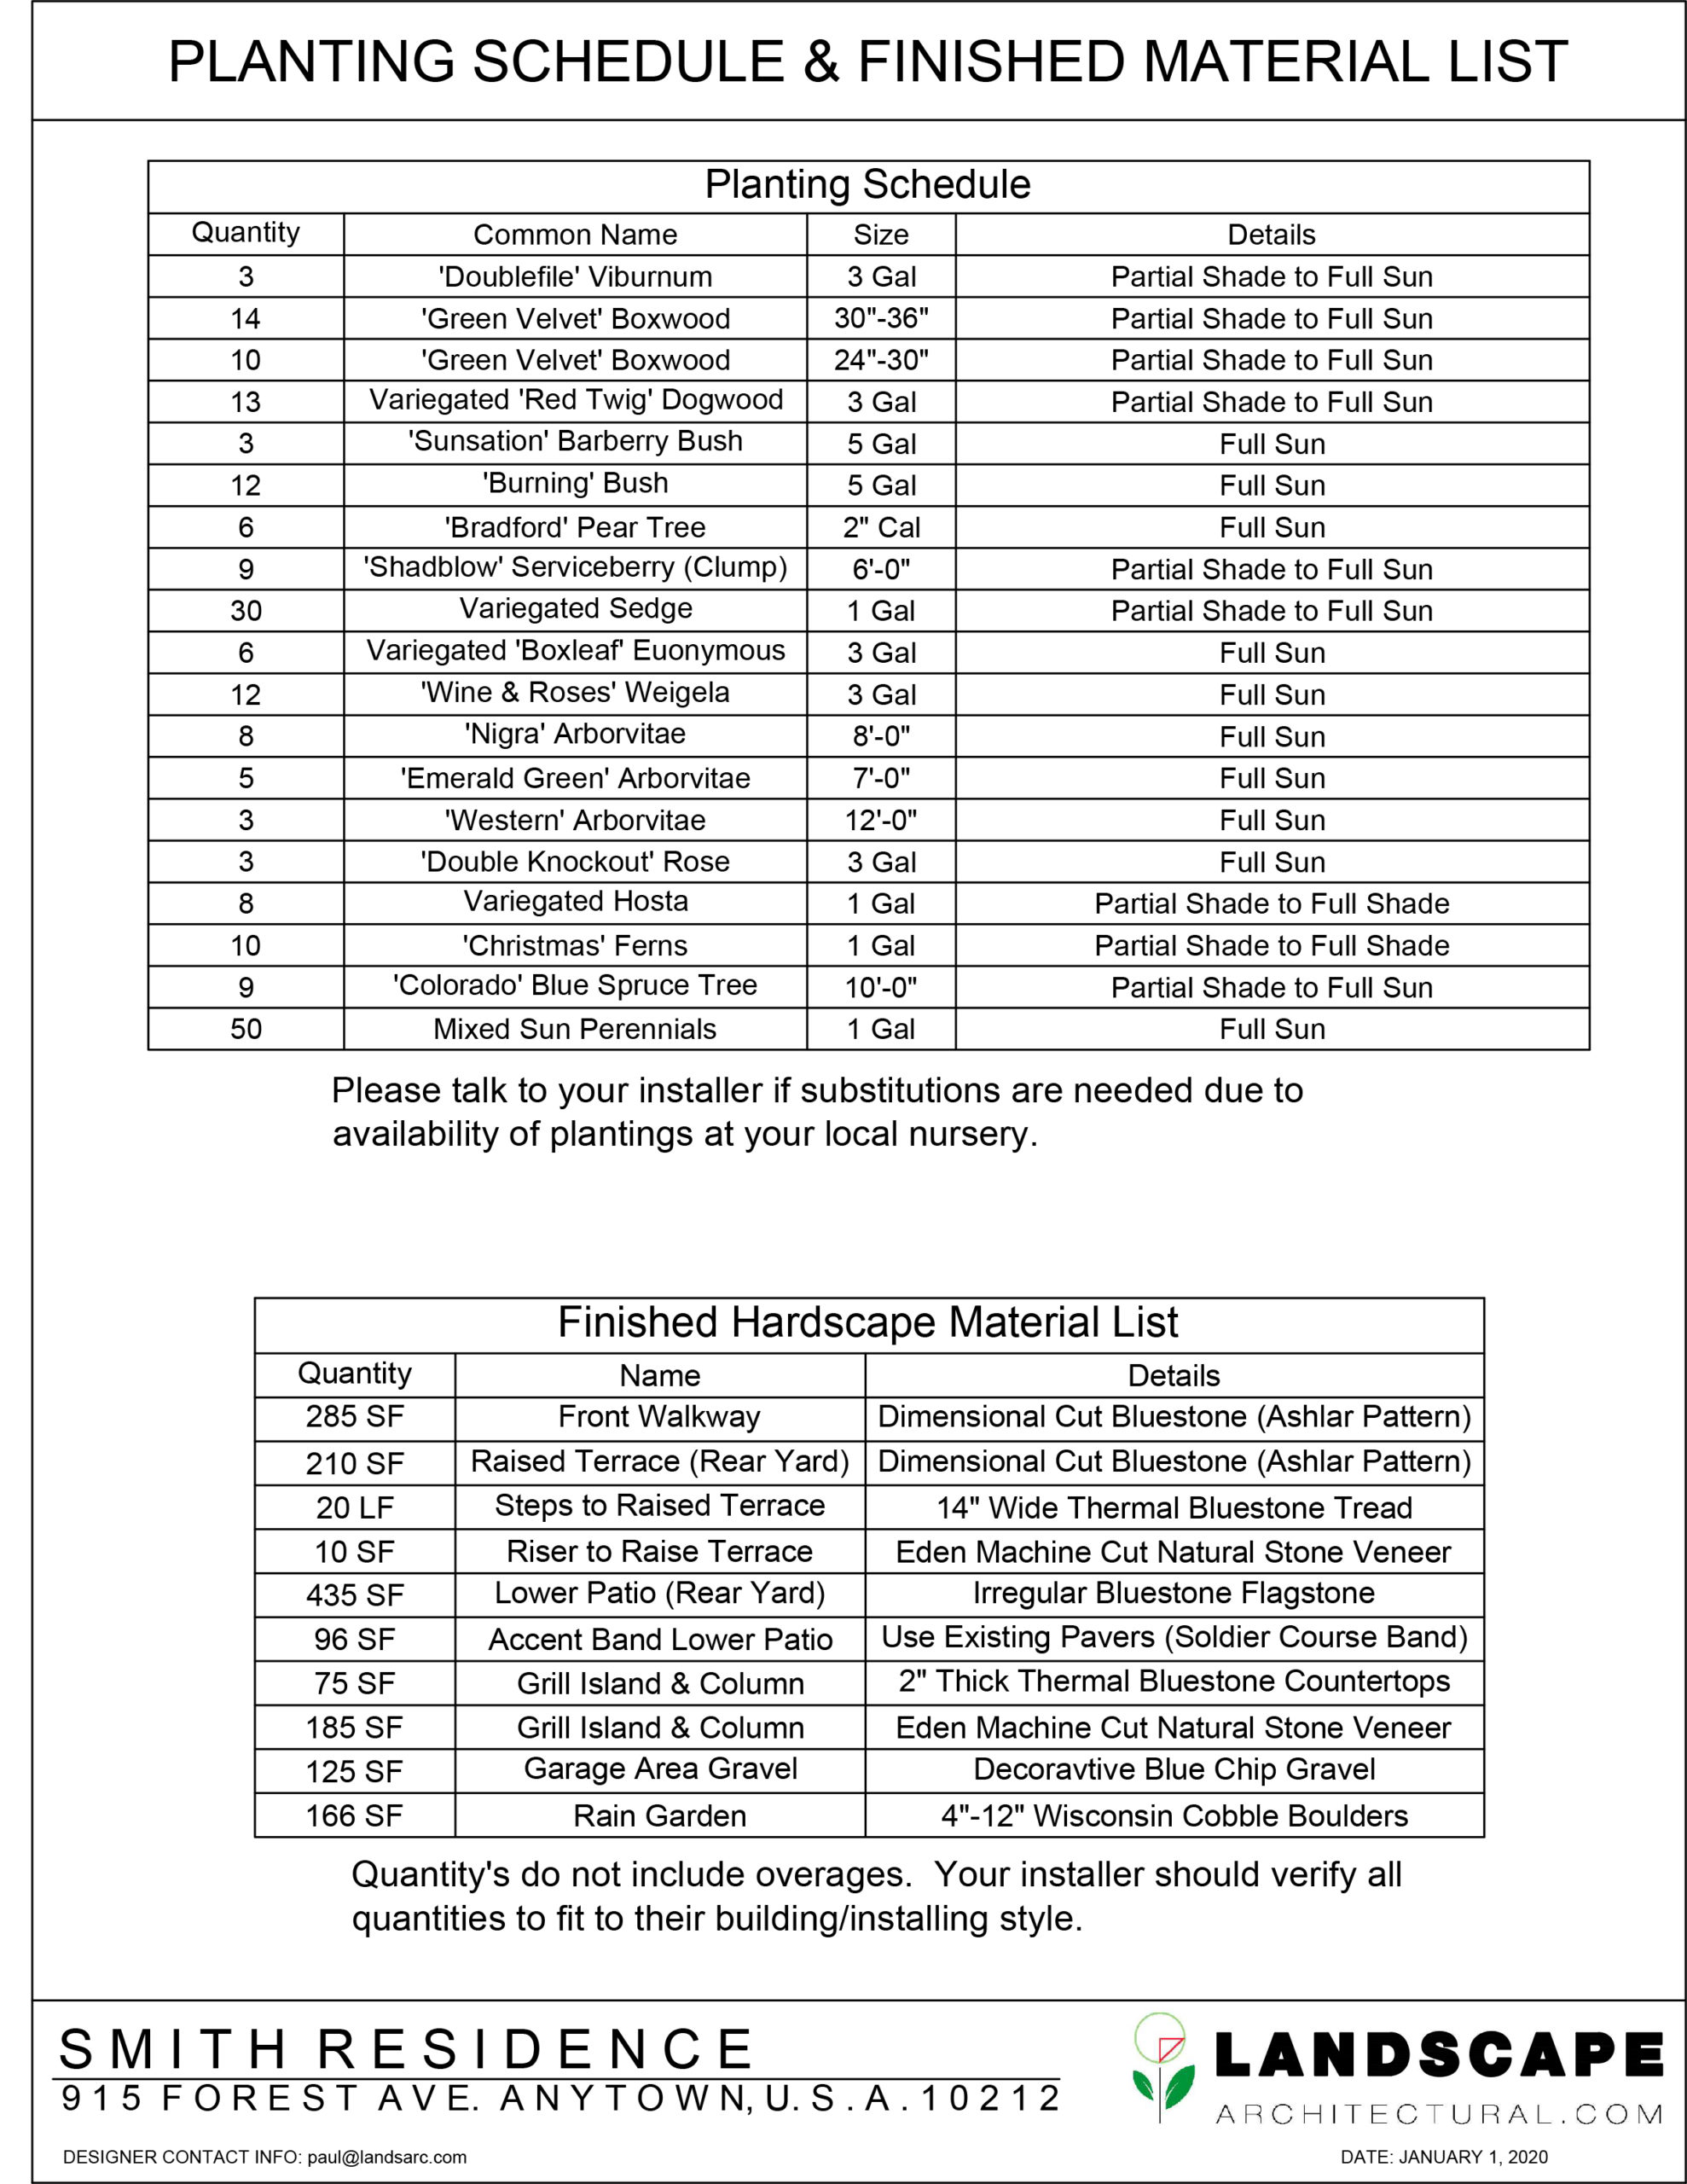 Plant Schedule and Material List